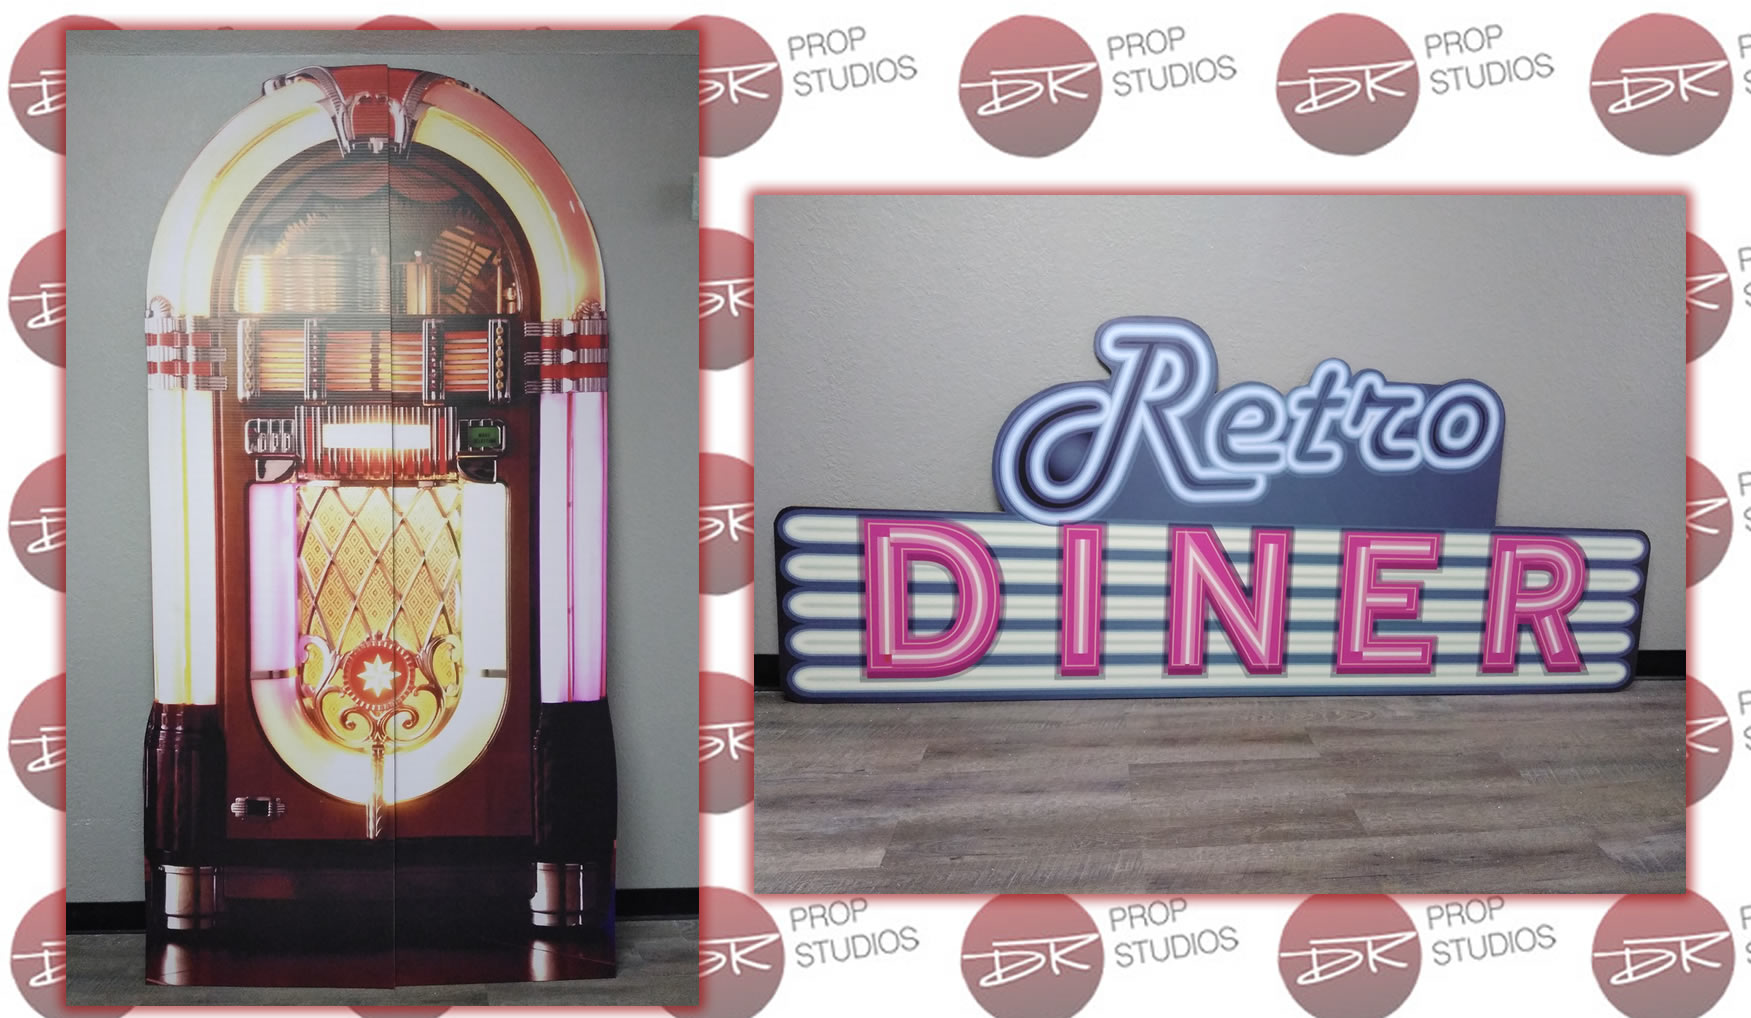 1950s Jukebox and Retro Diner Cardboard Cutout Standup Props for parties and events